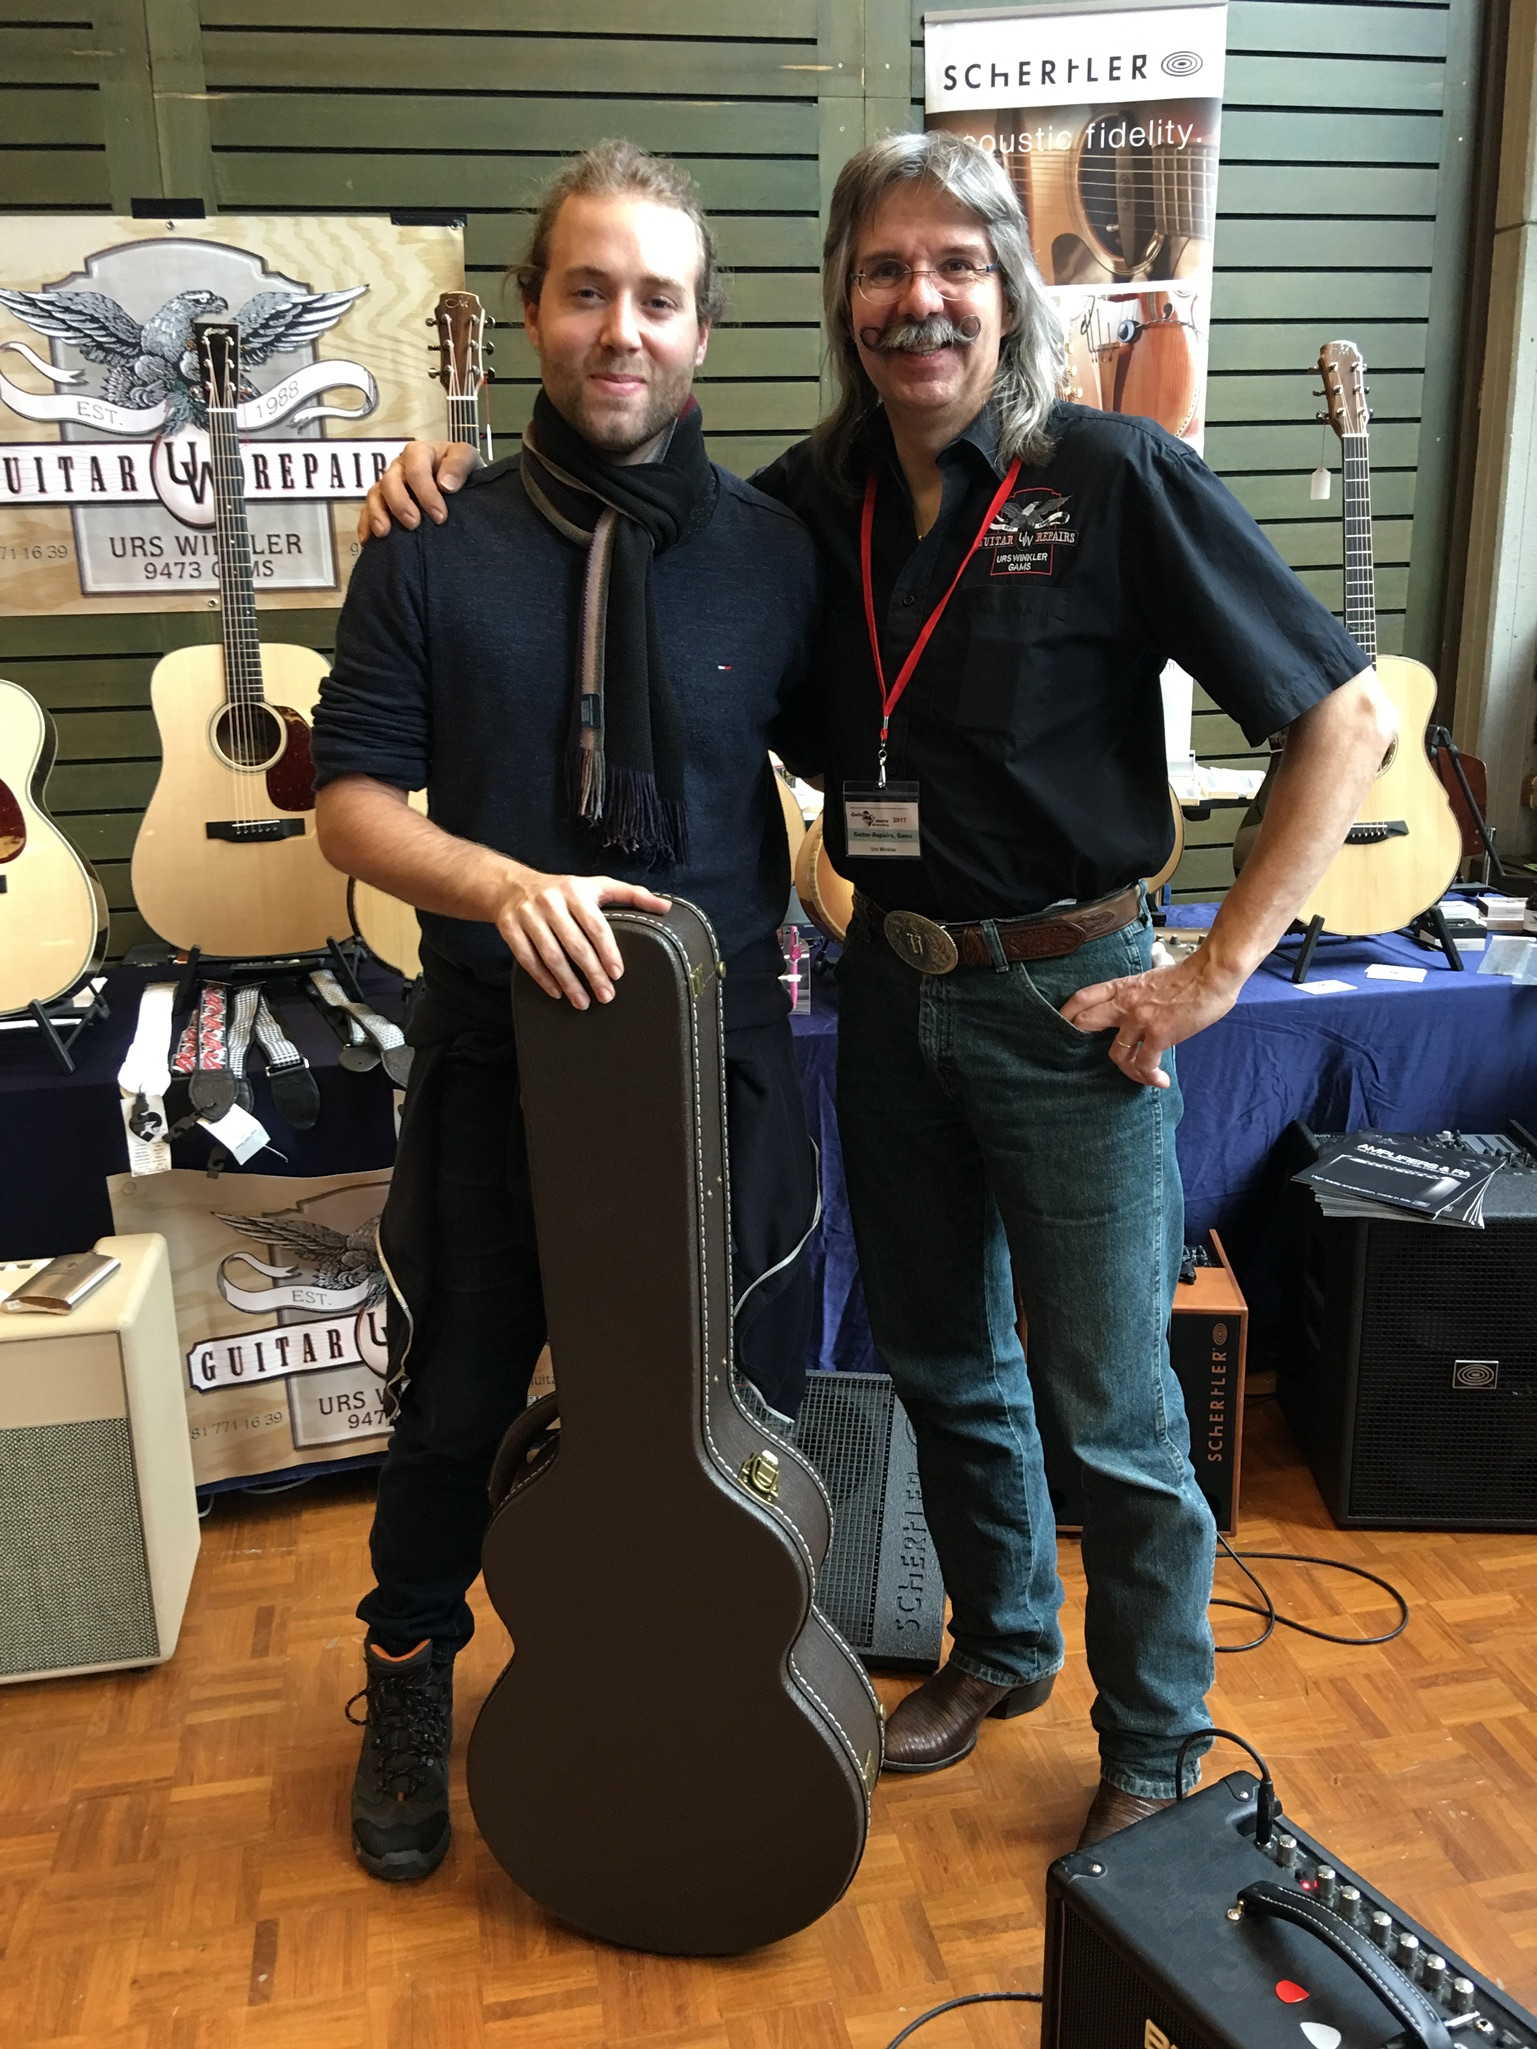 Picking up my new Maestro Guitar from Urs Winkler himself!